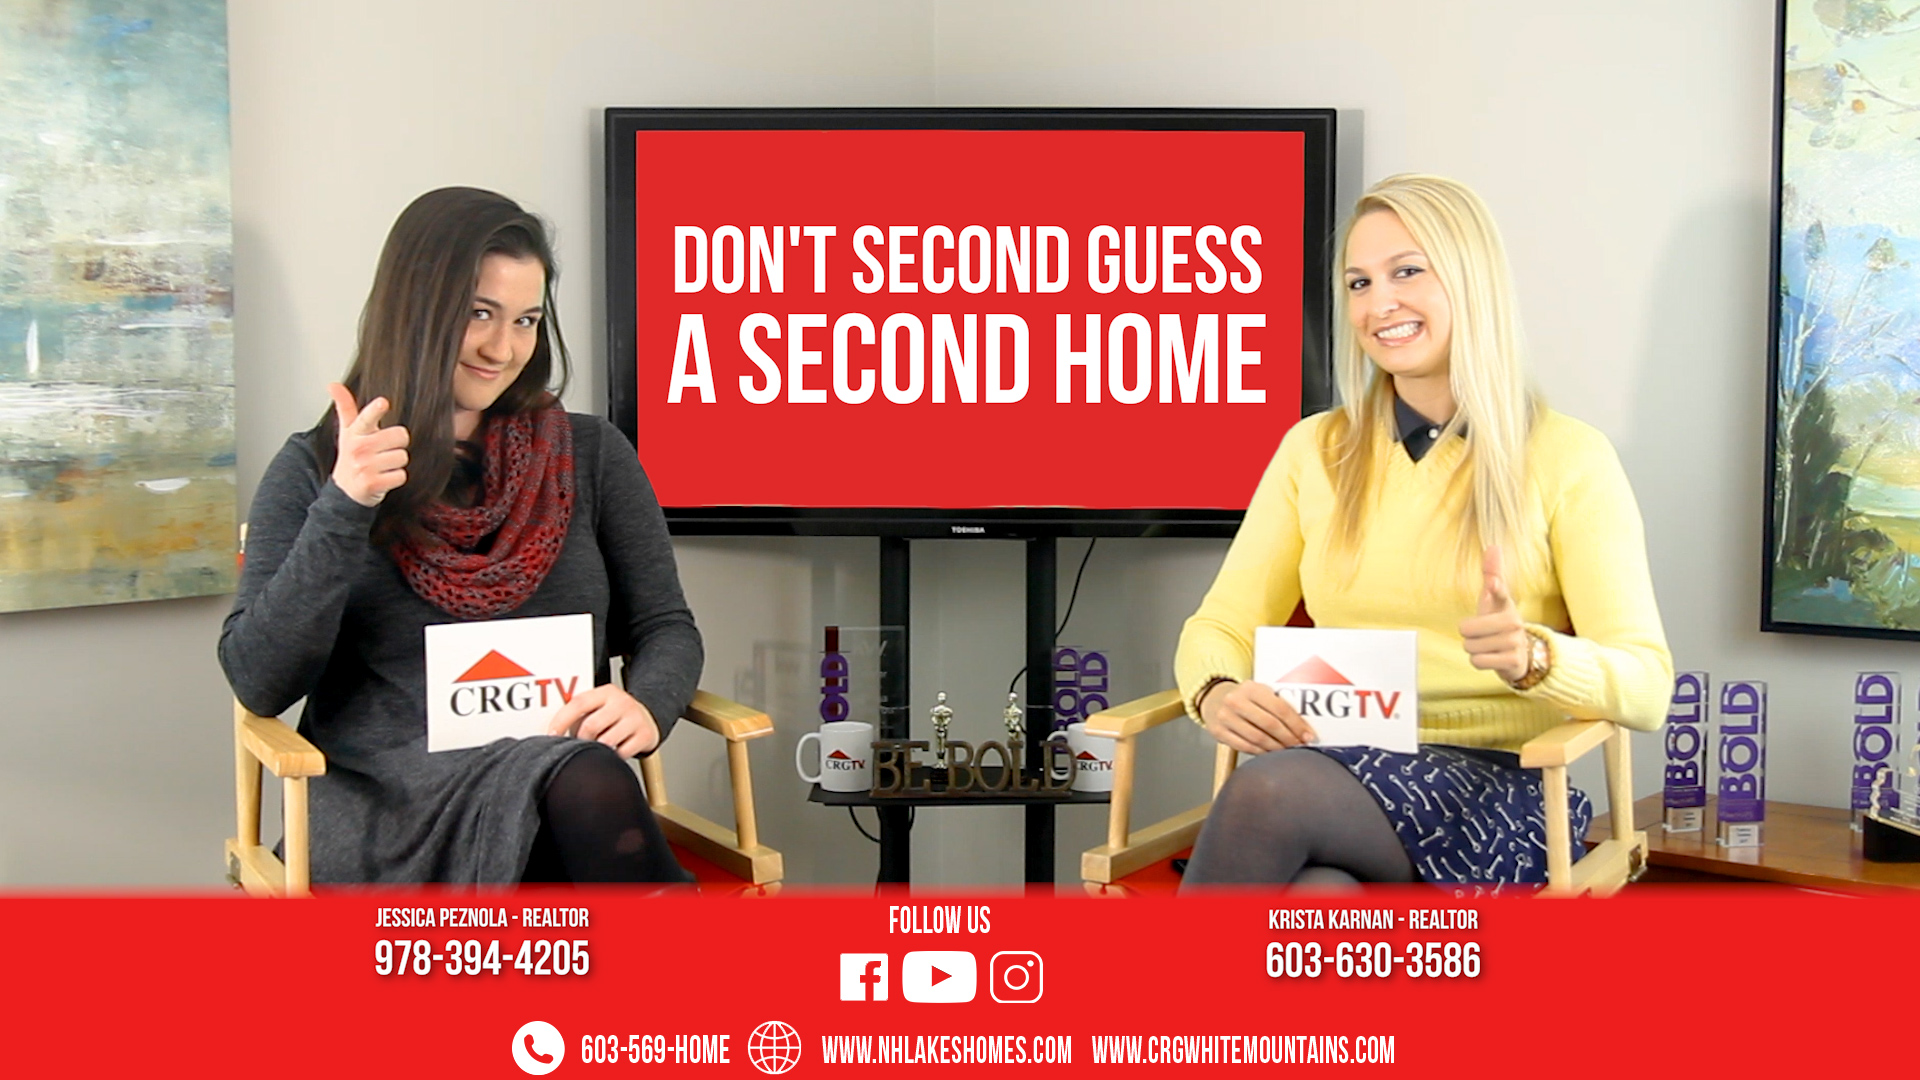 CRGTV: Top 5 Reasons to Buy a Second Home